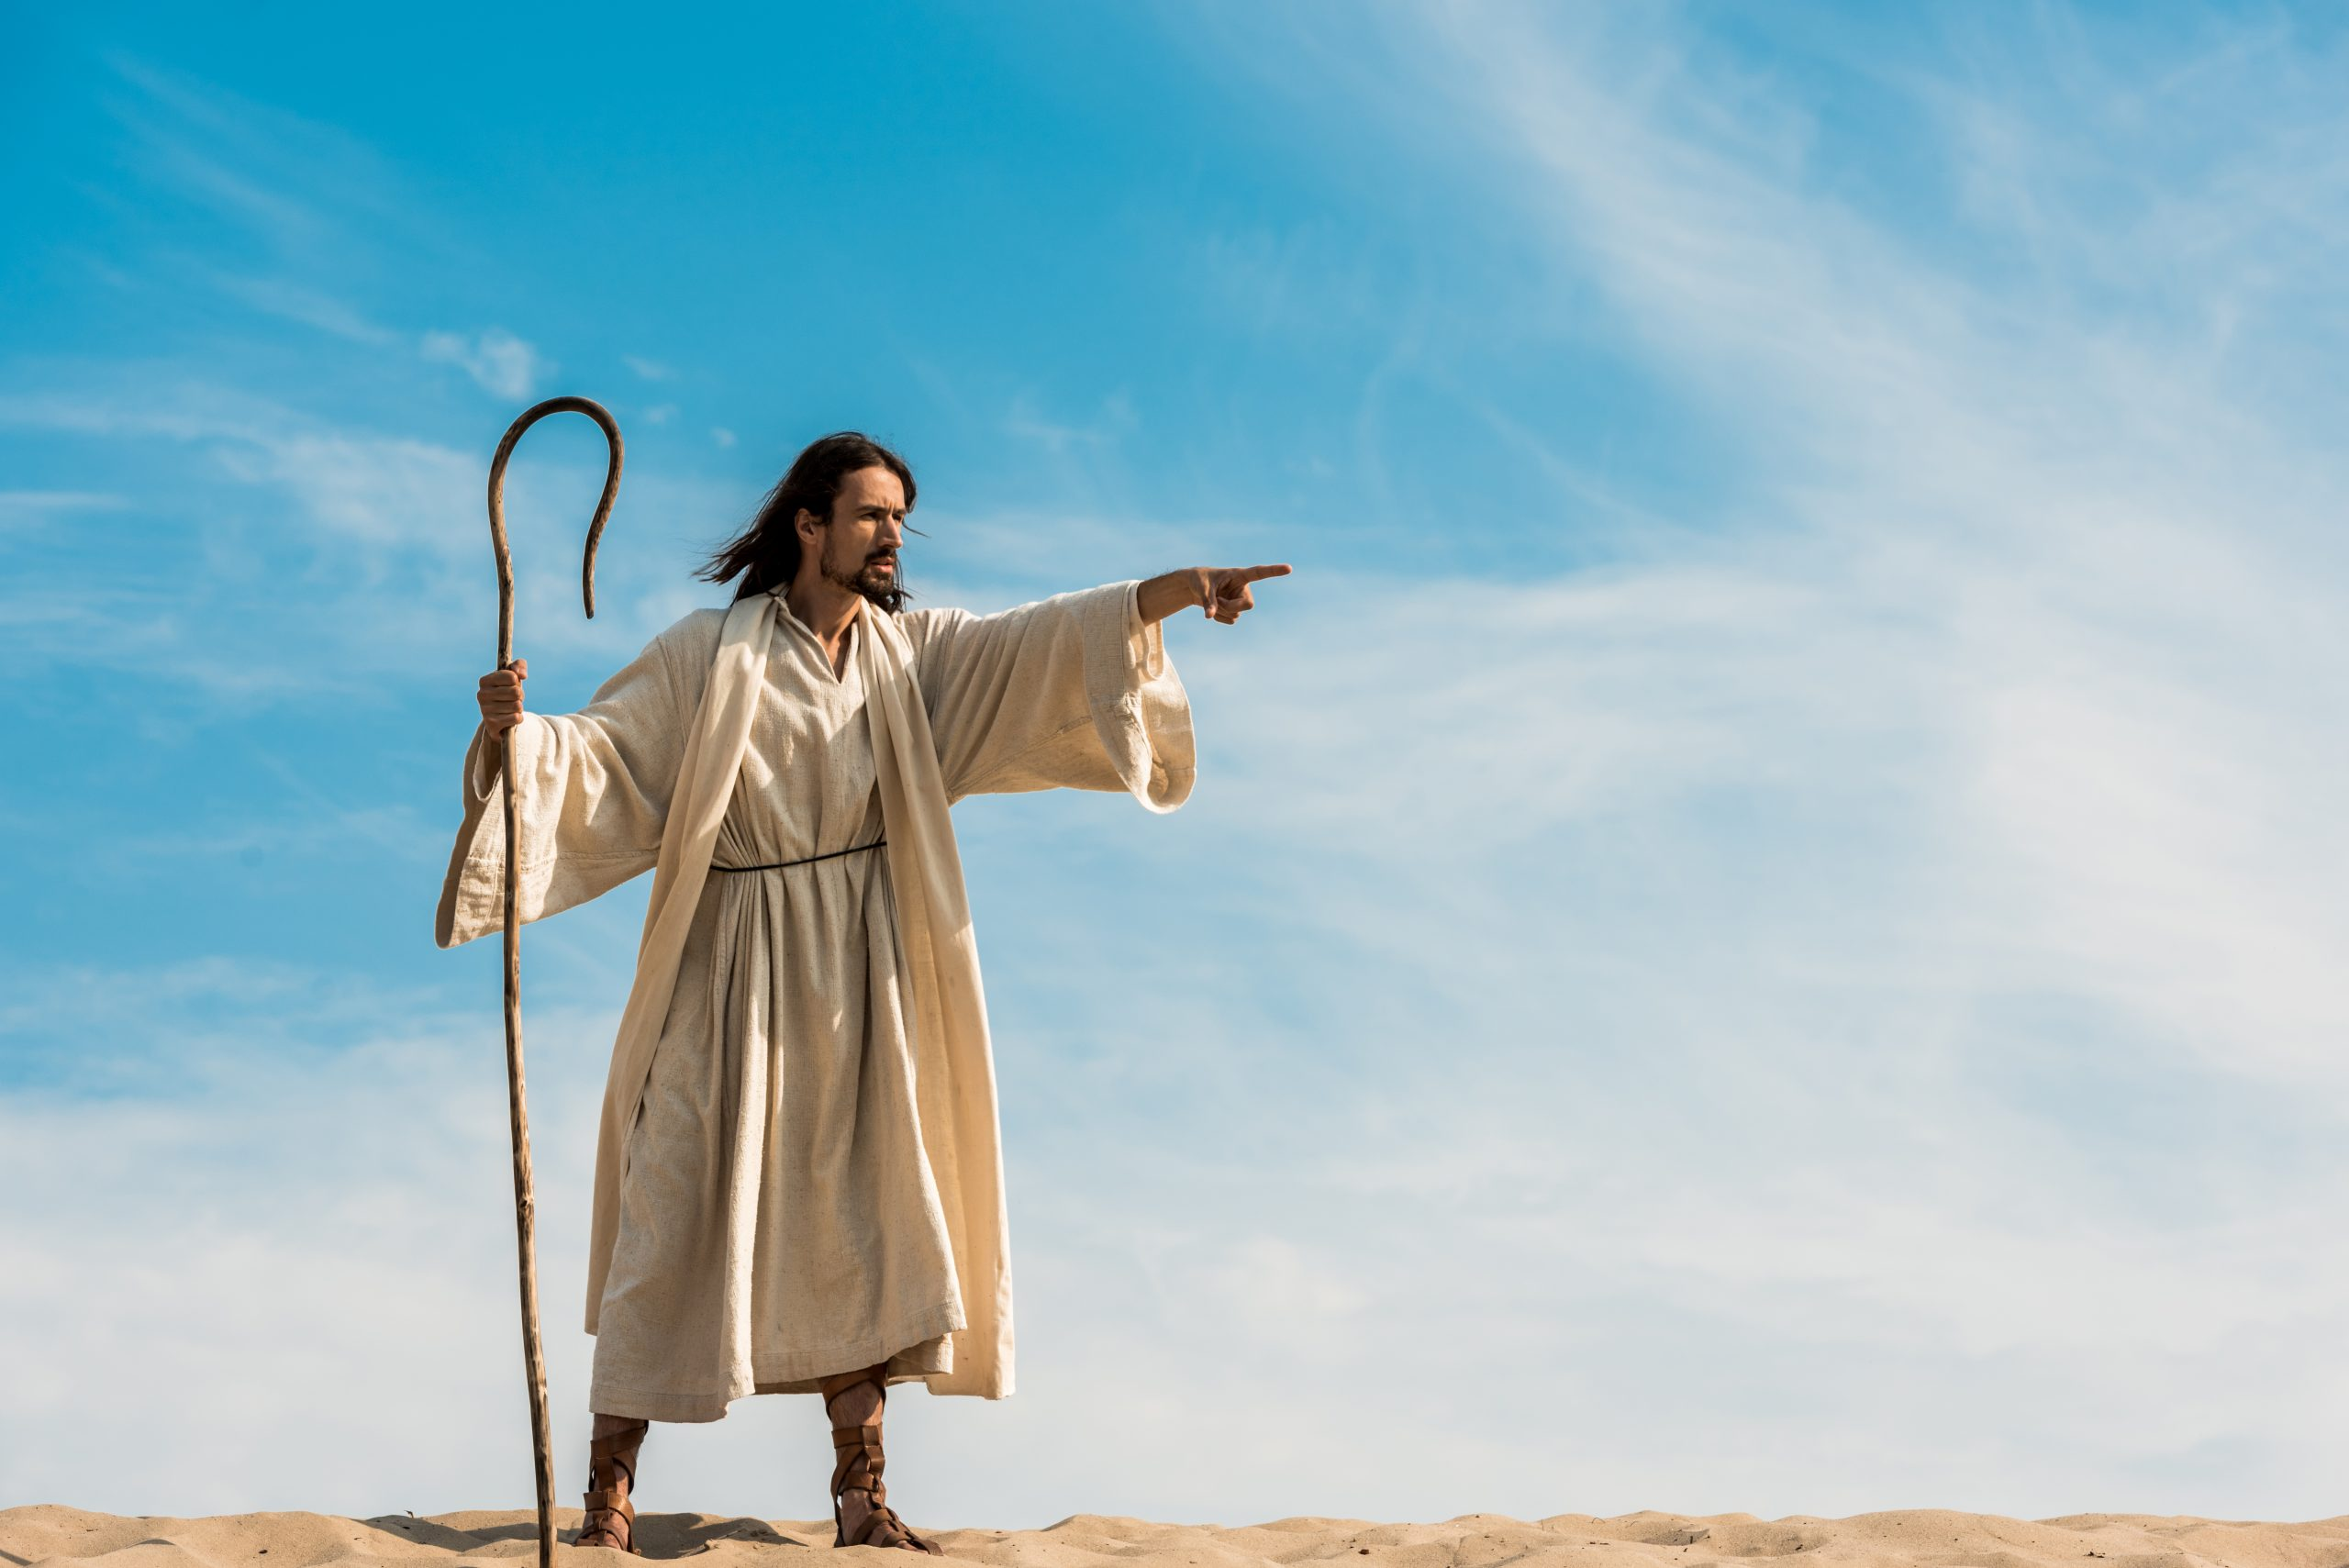 bearded man holding wooden cane and pointing with finger in desert against sky